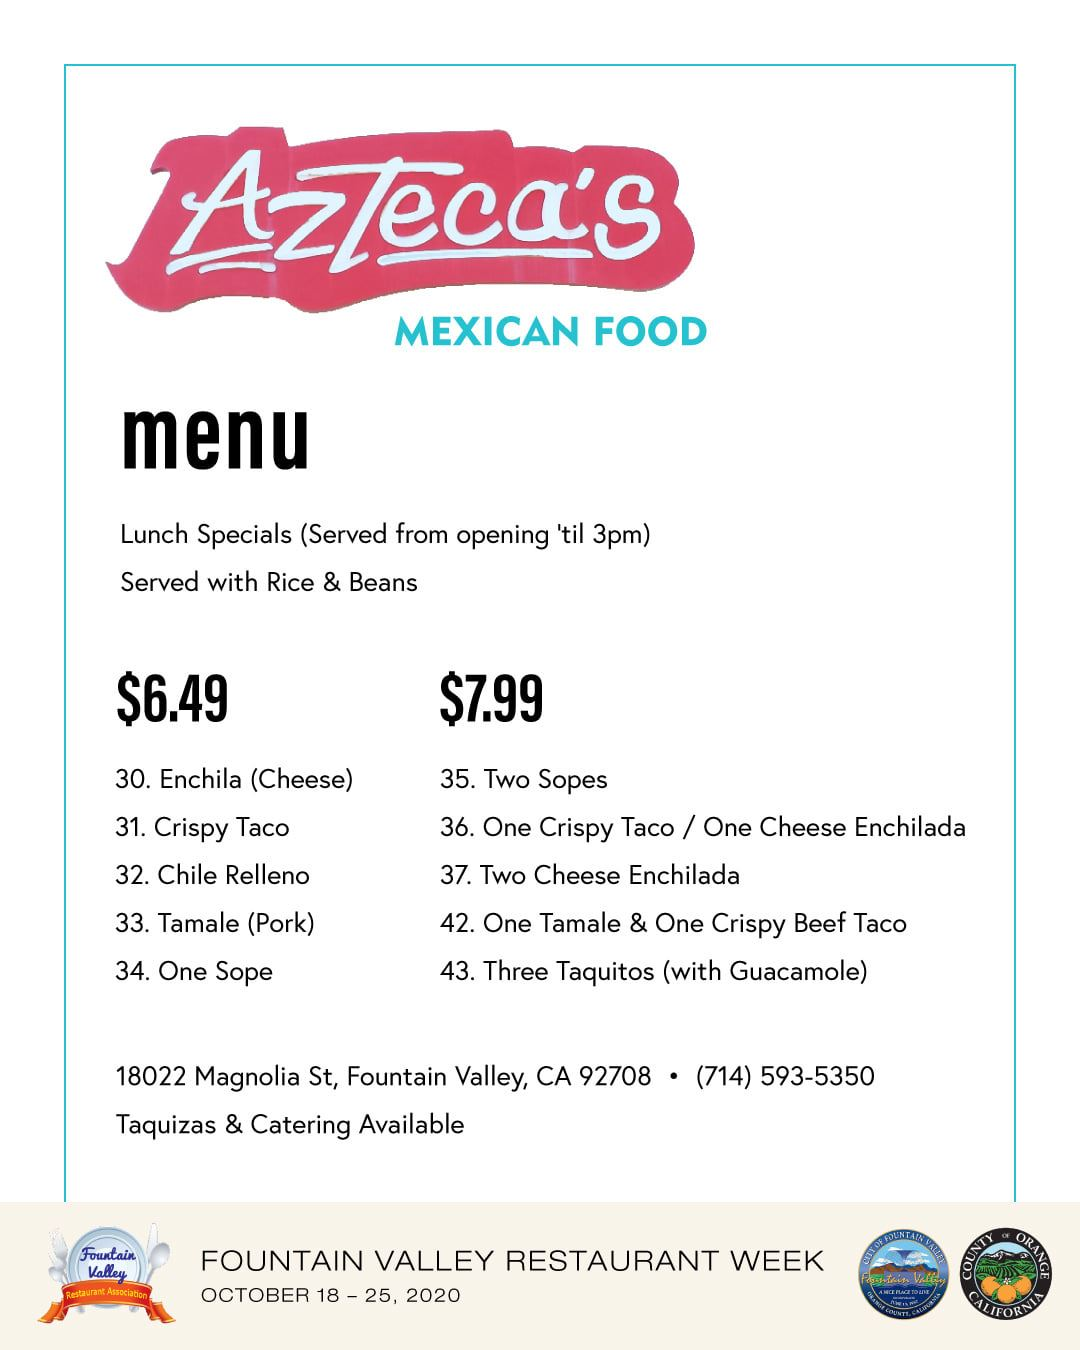 Aztecas Mexican Food Menu 10-2020